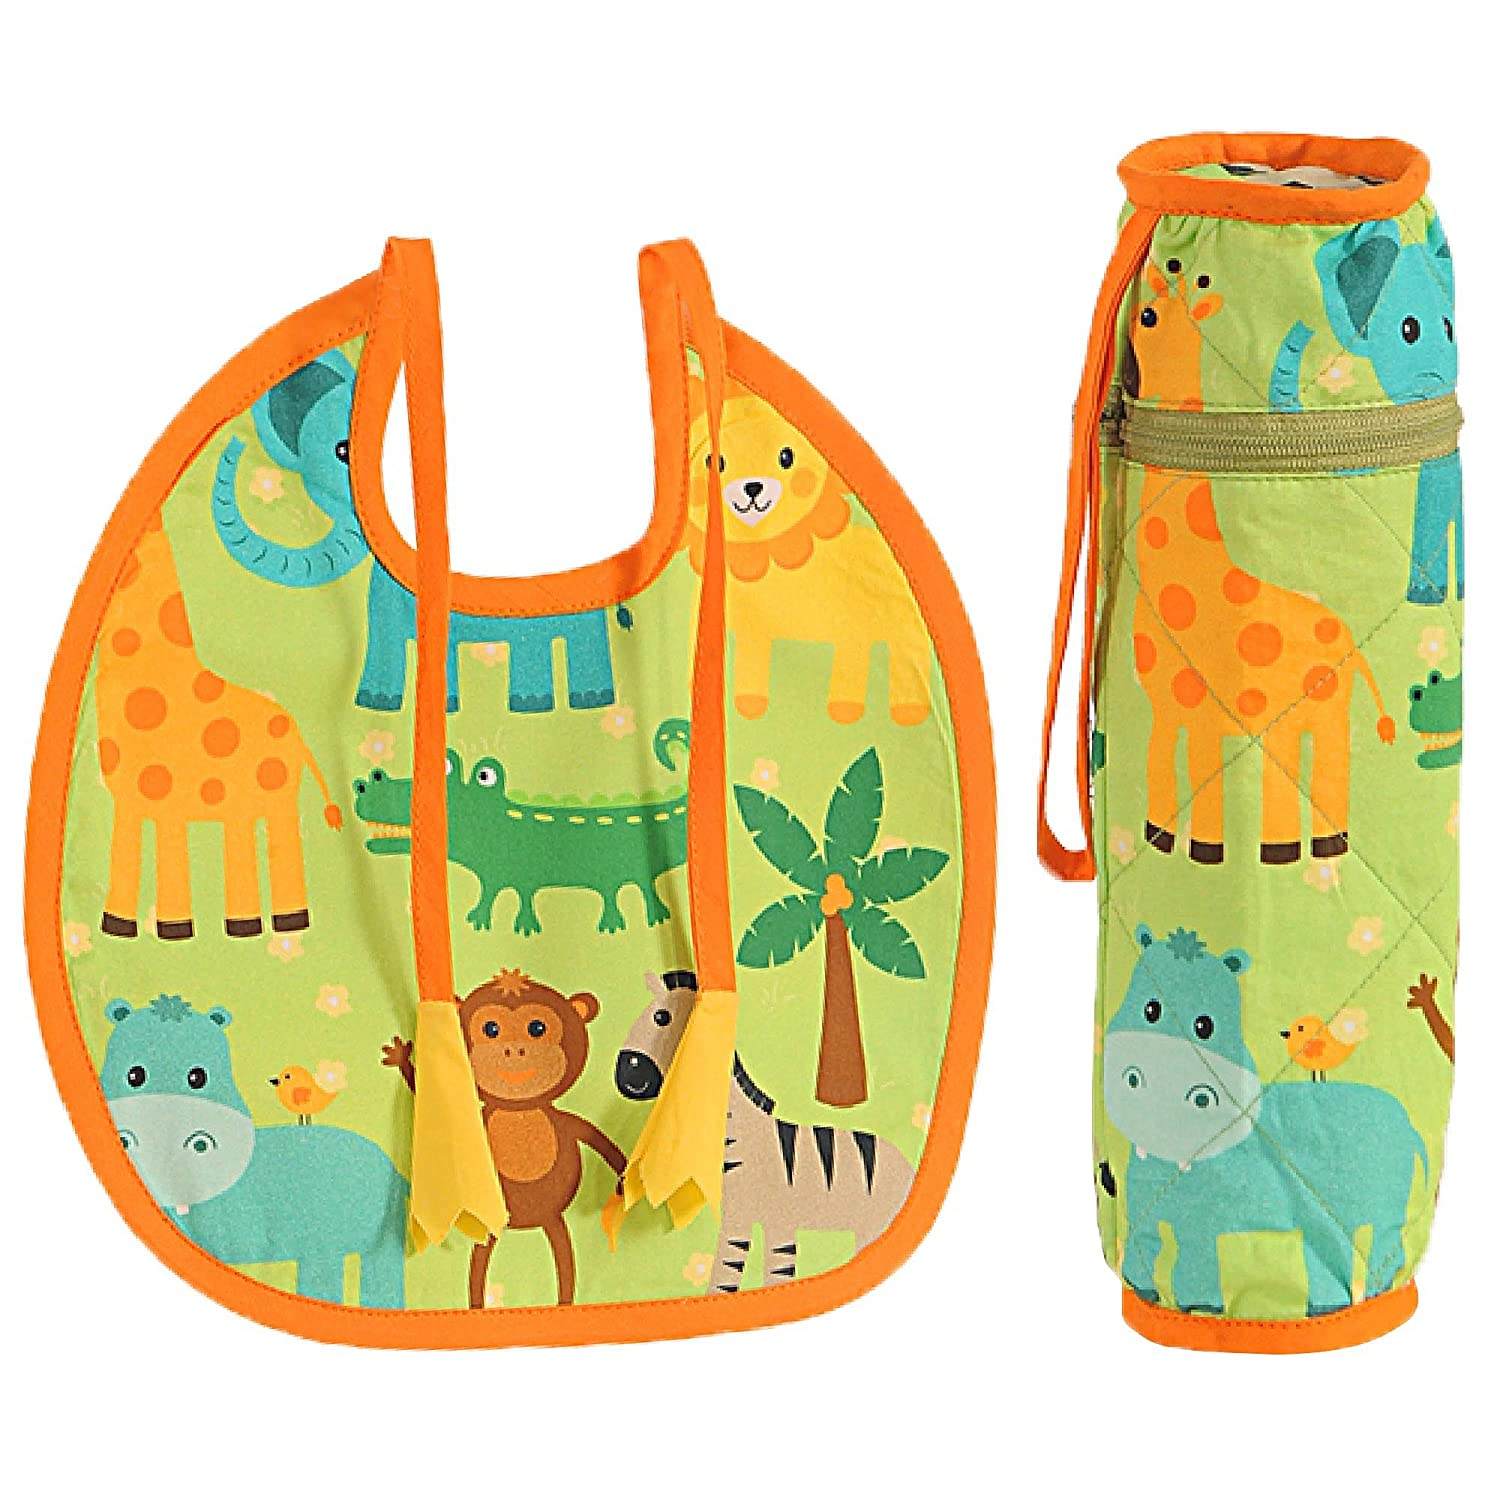 84f291bee Buy Digitally printed 300 TC Cotton Quilted Bib And Bottle Cover Set For  Infant Kids-Jungle Animal Online at Low Prices in India - Amazon.in